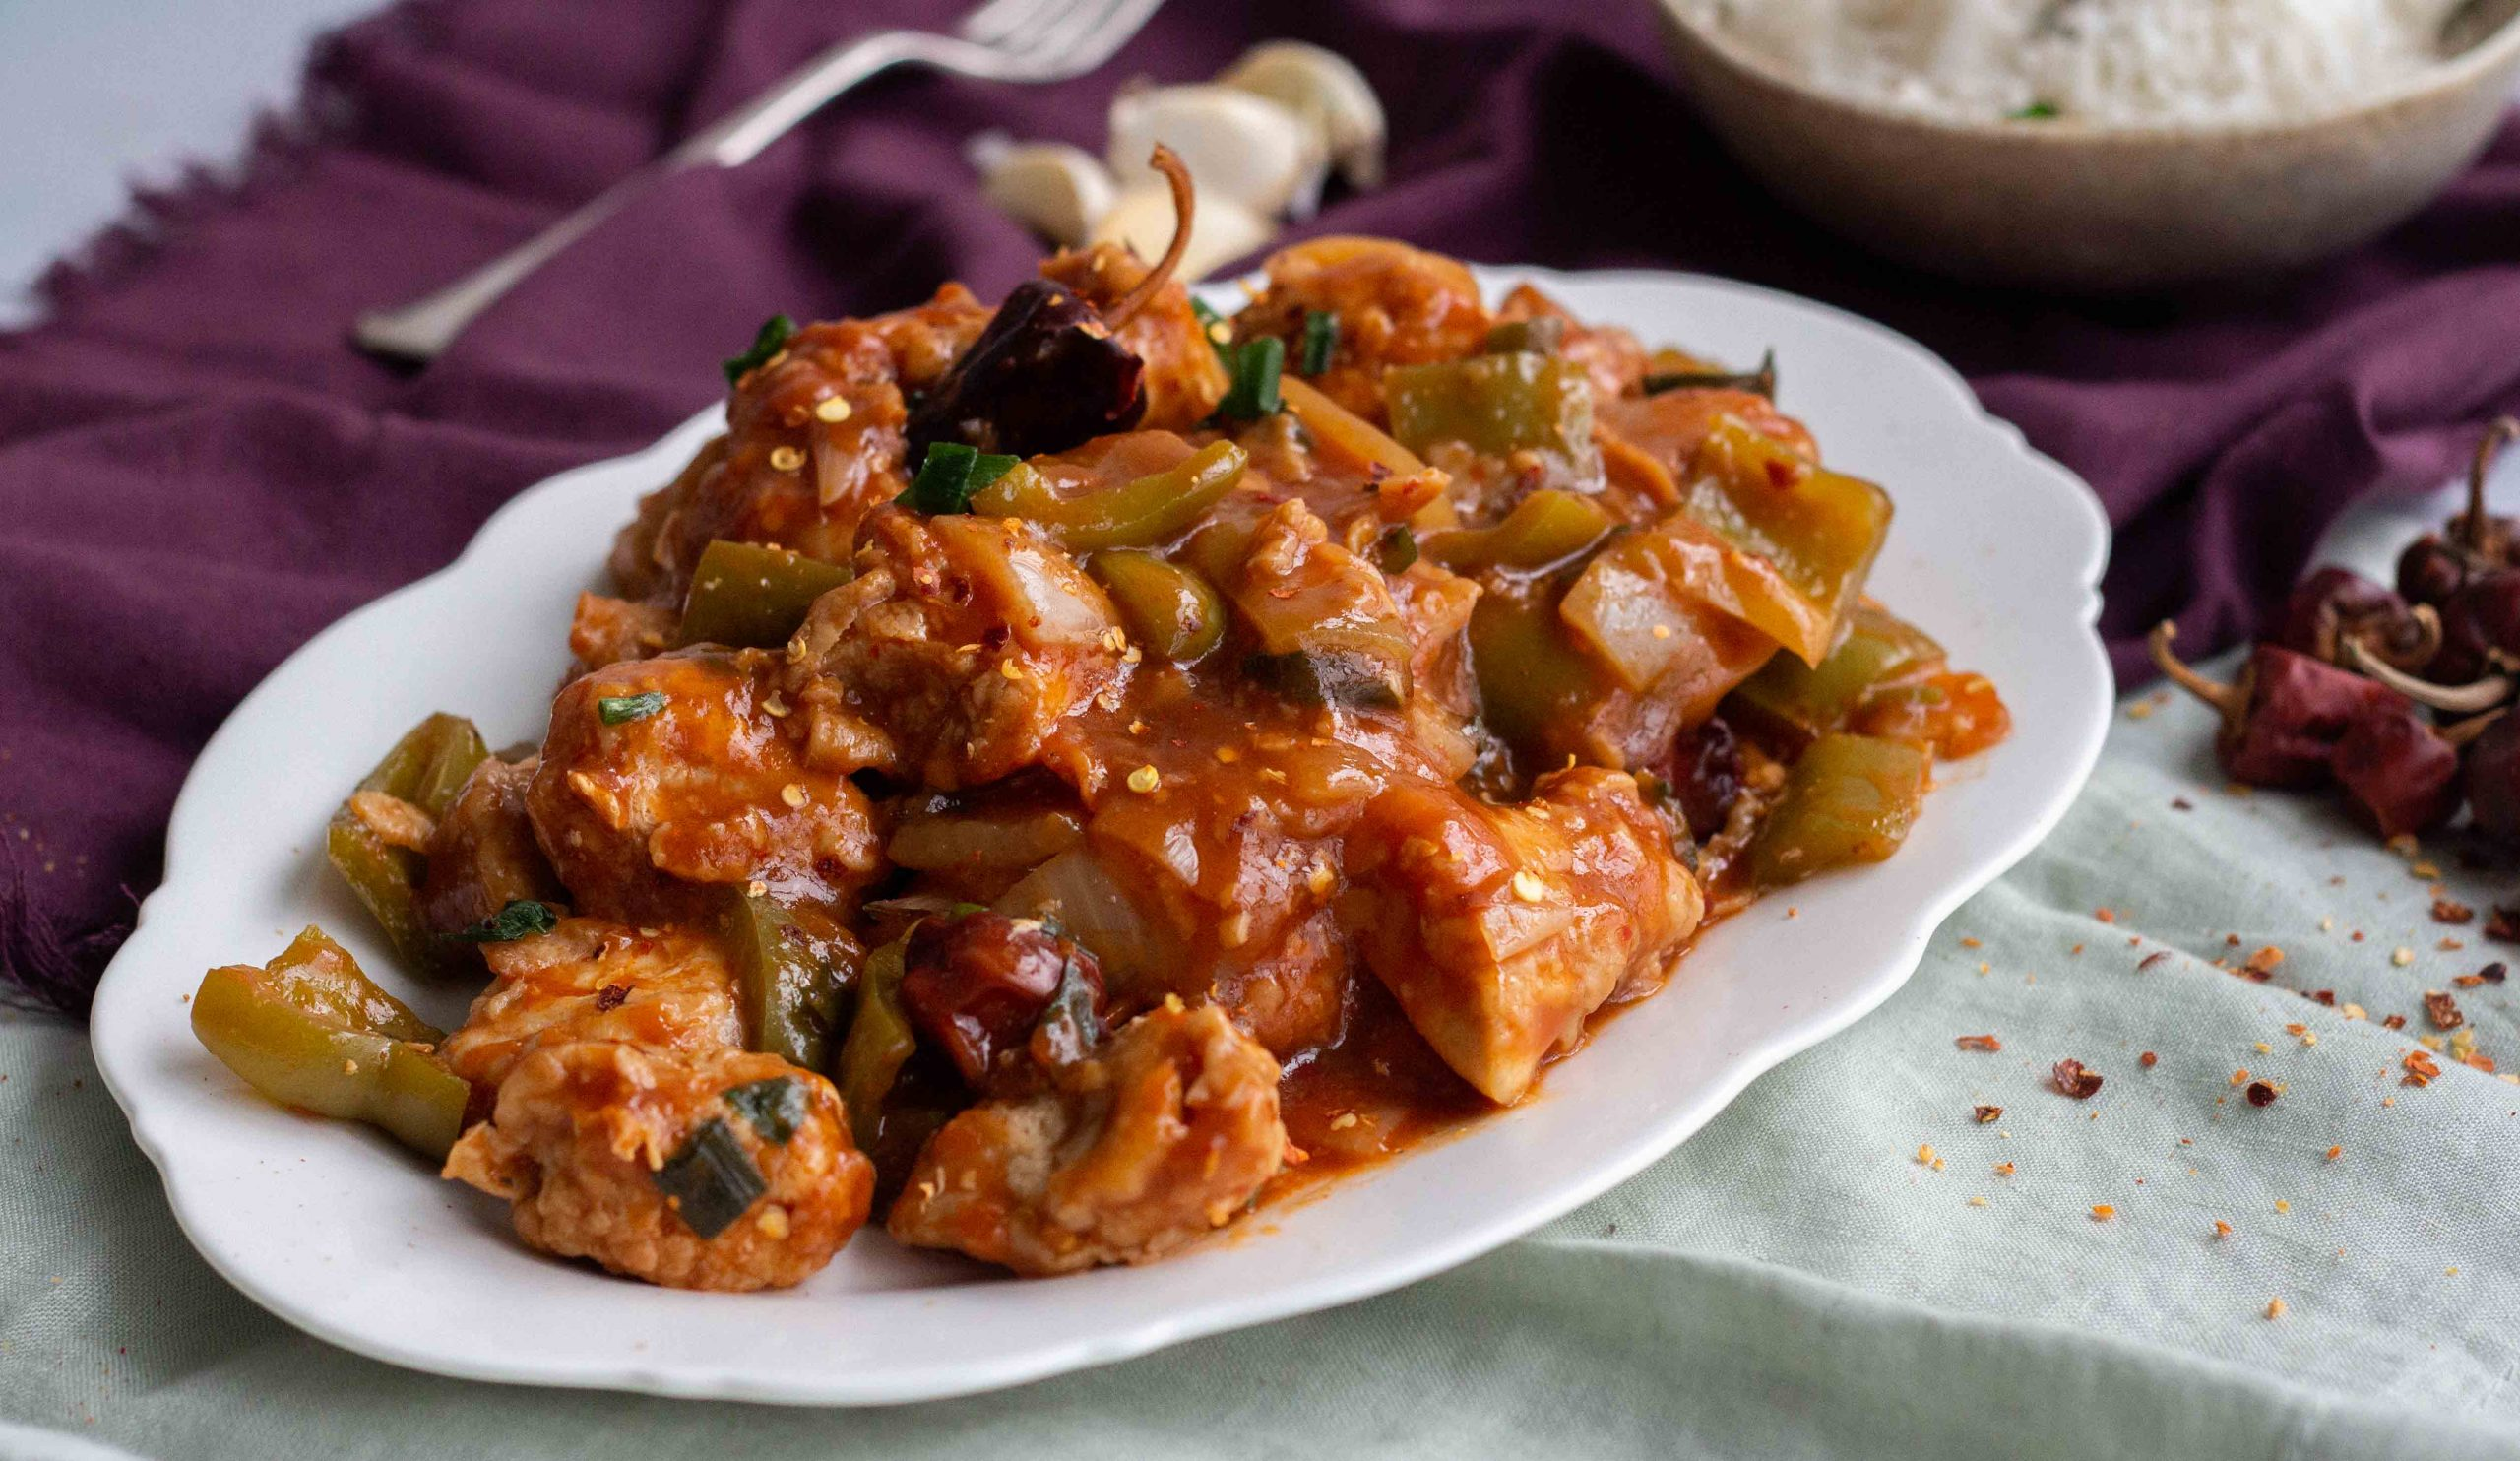 Indo Chinese style chicken manchurian served on a white platter with rice in the background.